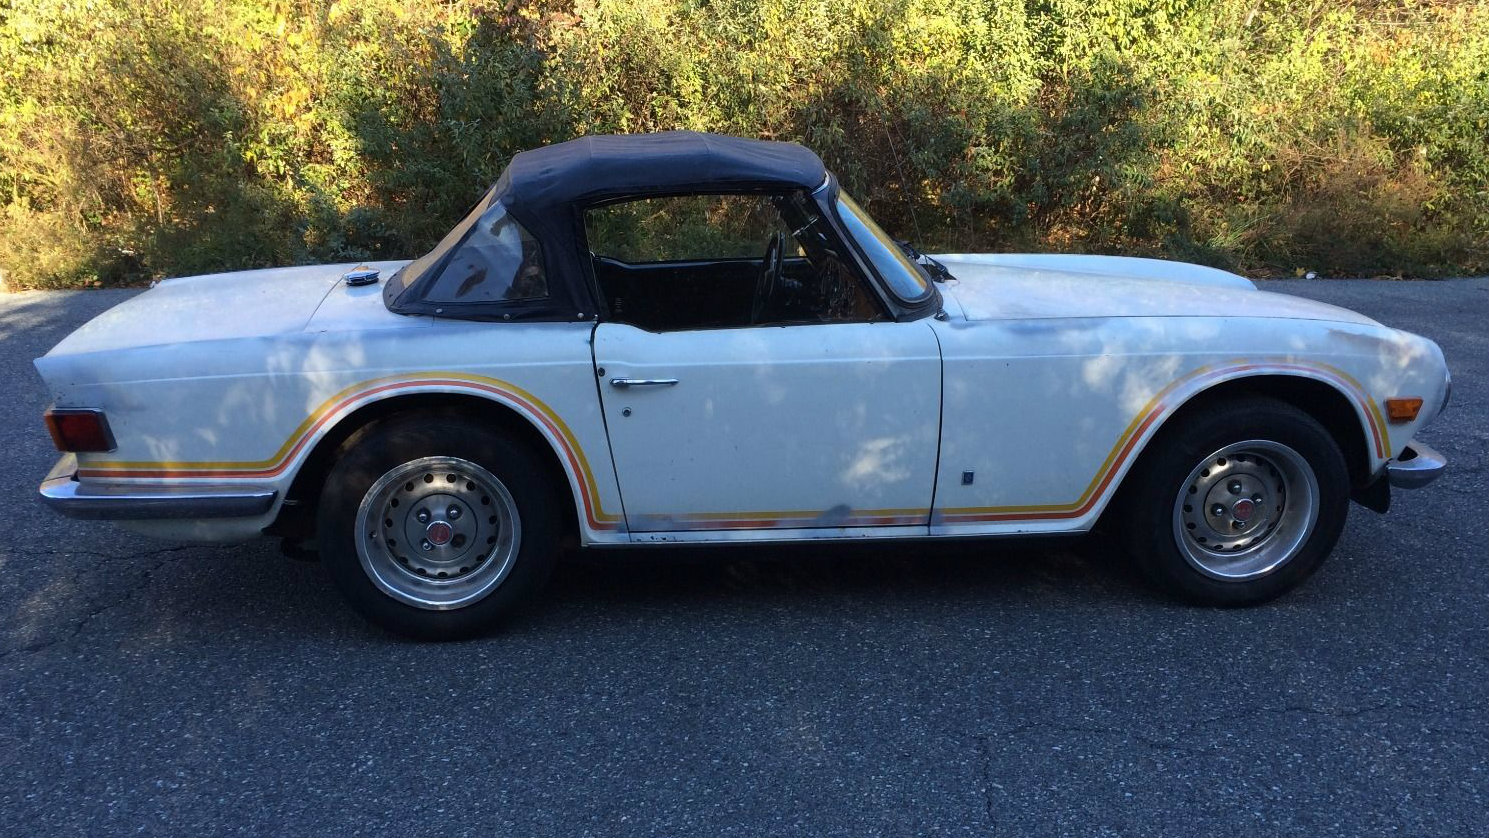 Listing All Cars >> 1 1 1 2 6 A Fleet Of 3 Tr6 Project Cars